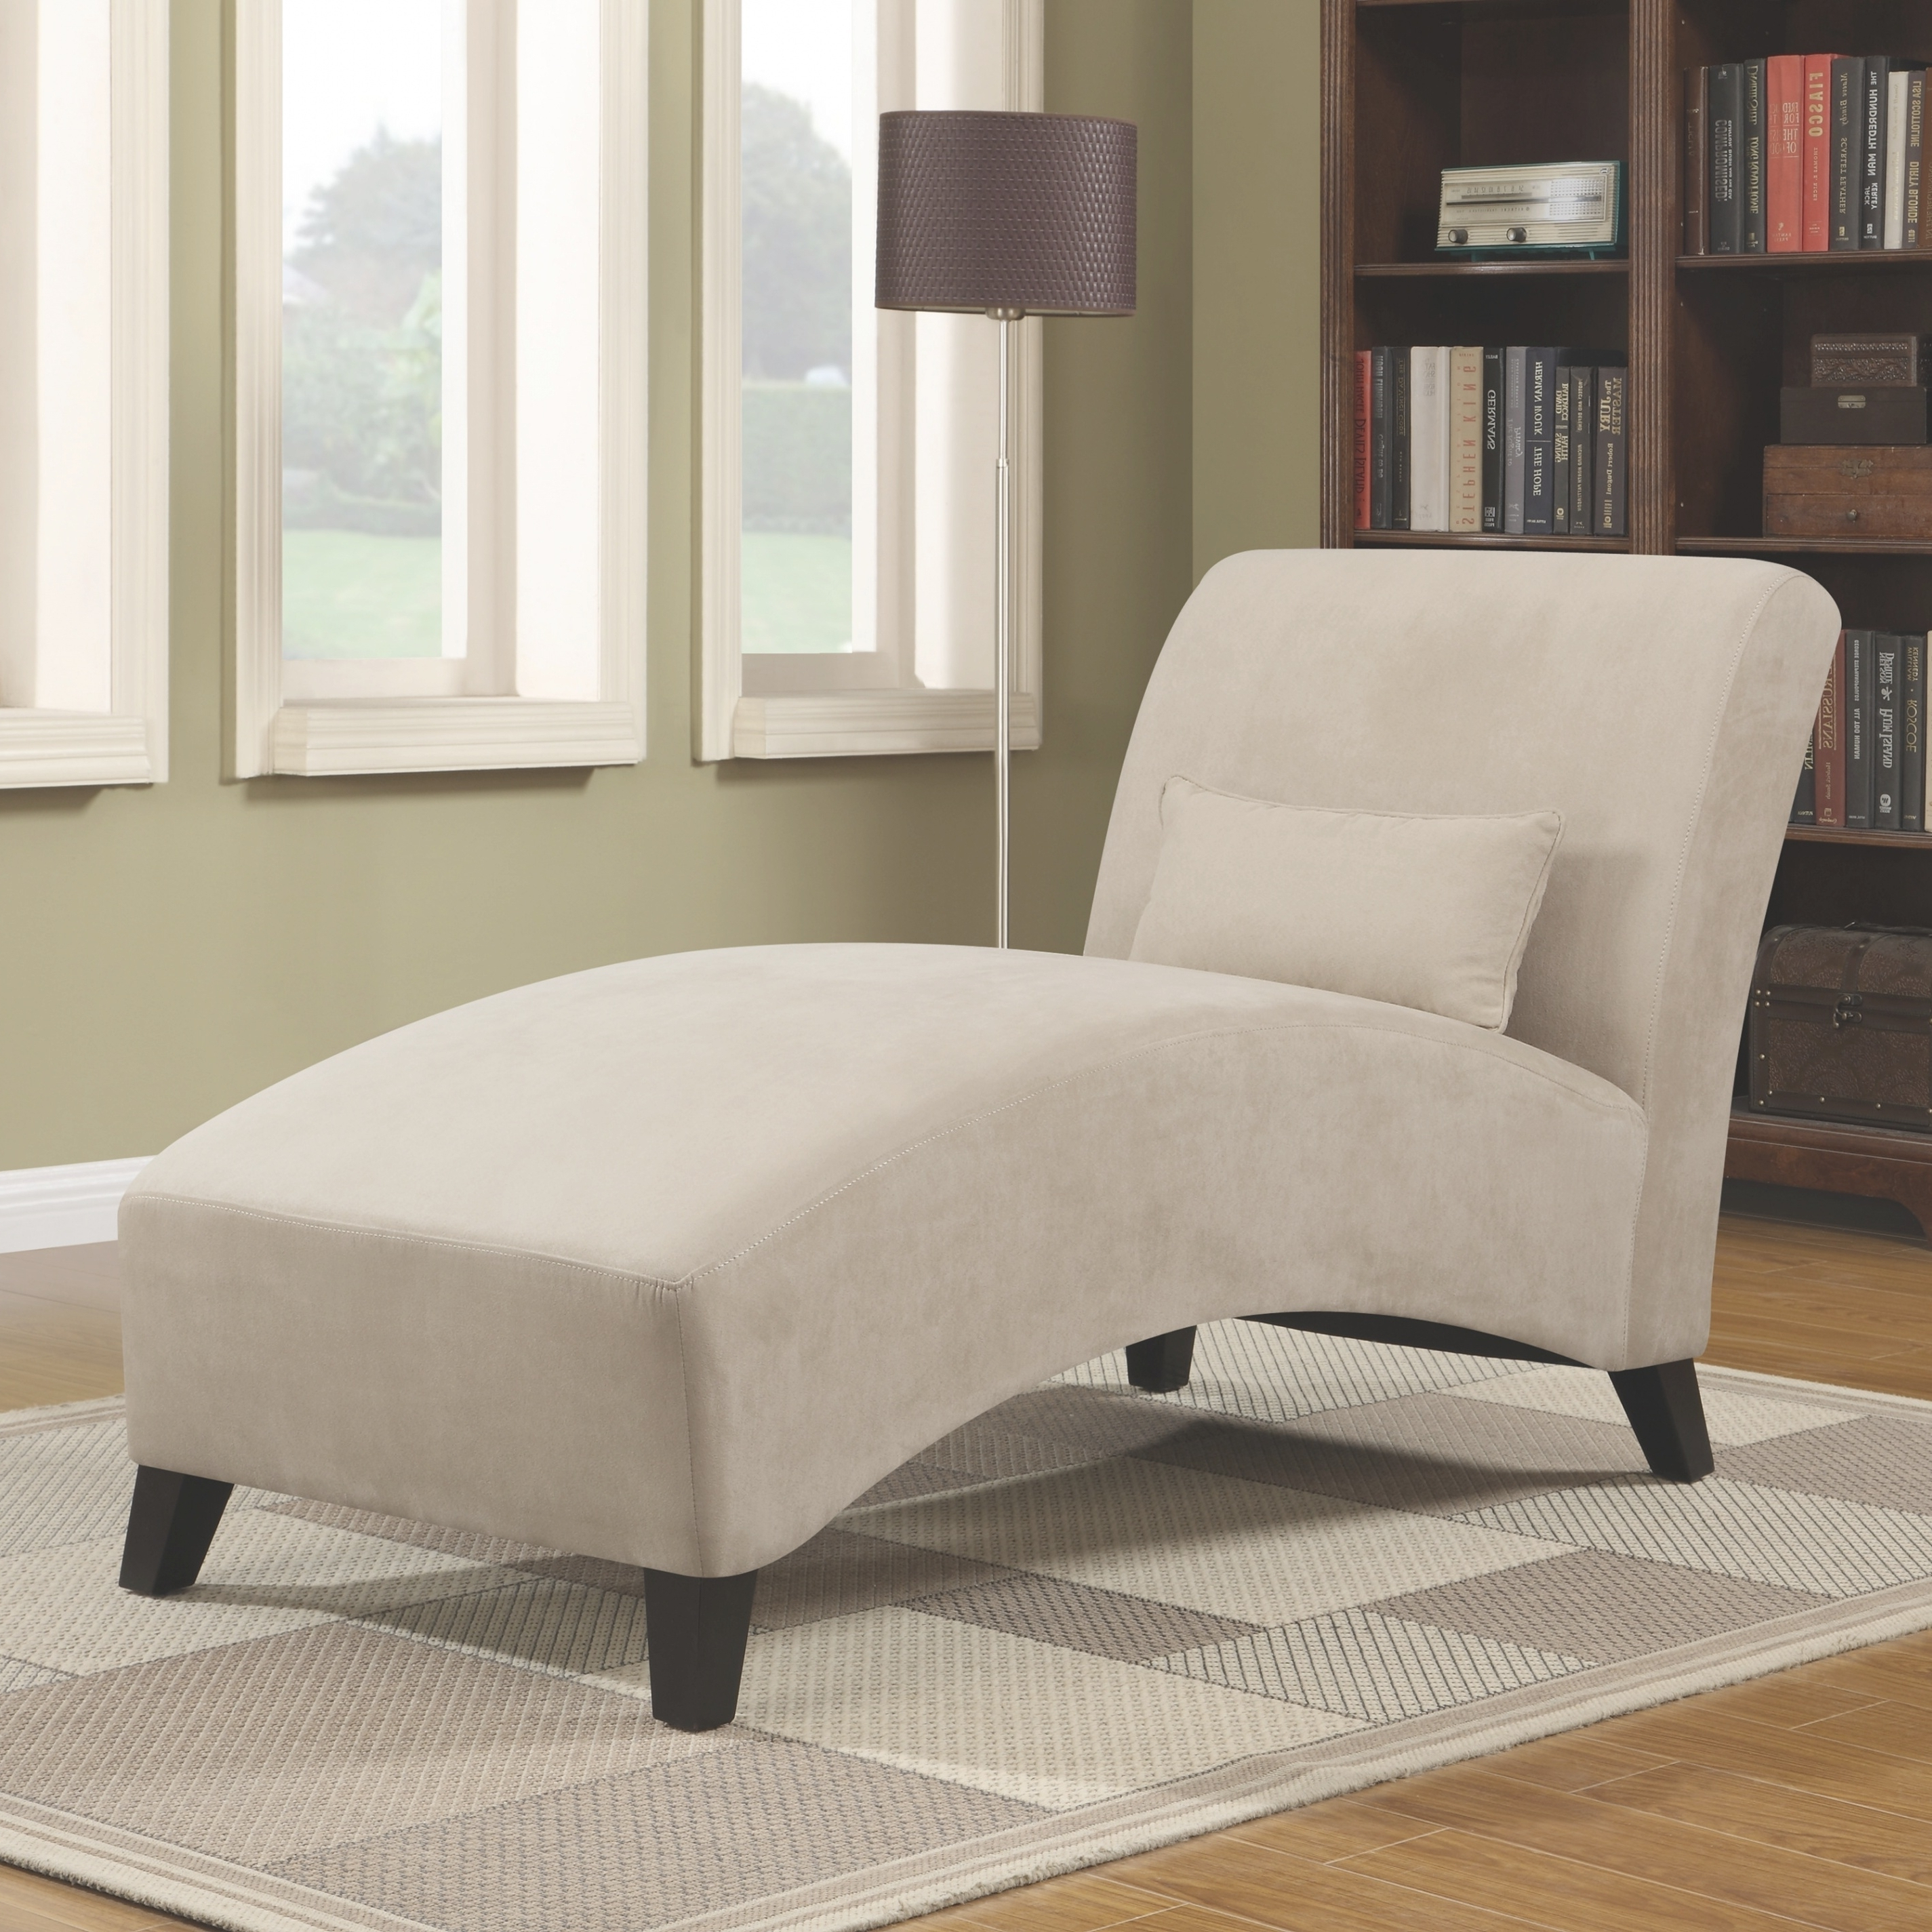 Cover For Indoor Chaise Lounge Chair • Lounge Chairs Ideas With Regard To Most Popular Indoor Chaise Lounge Covers (View 4 of 15)